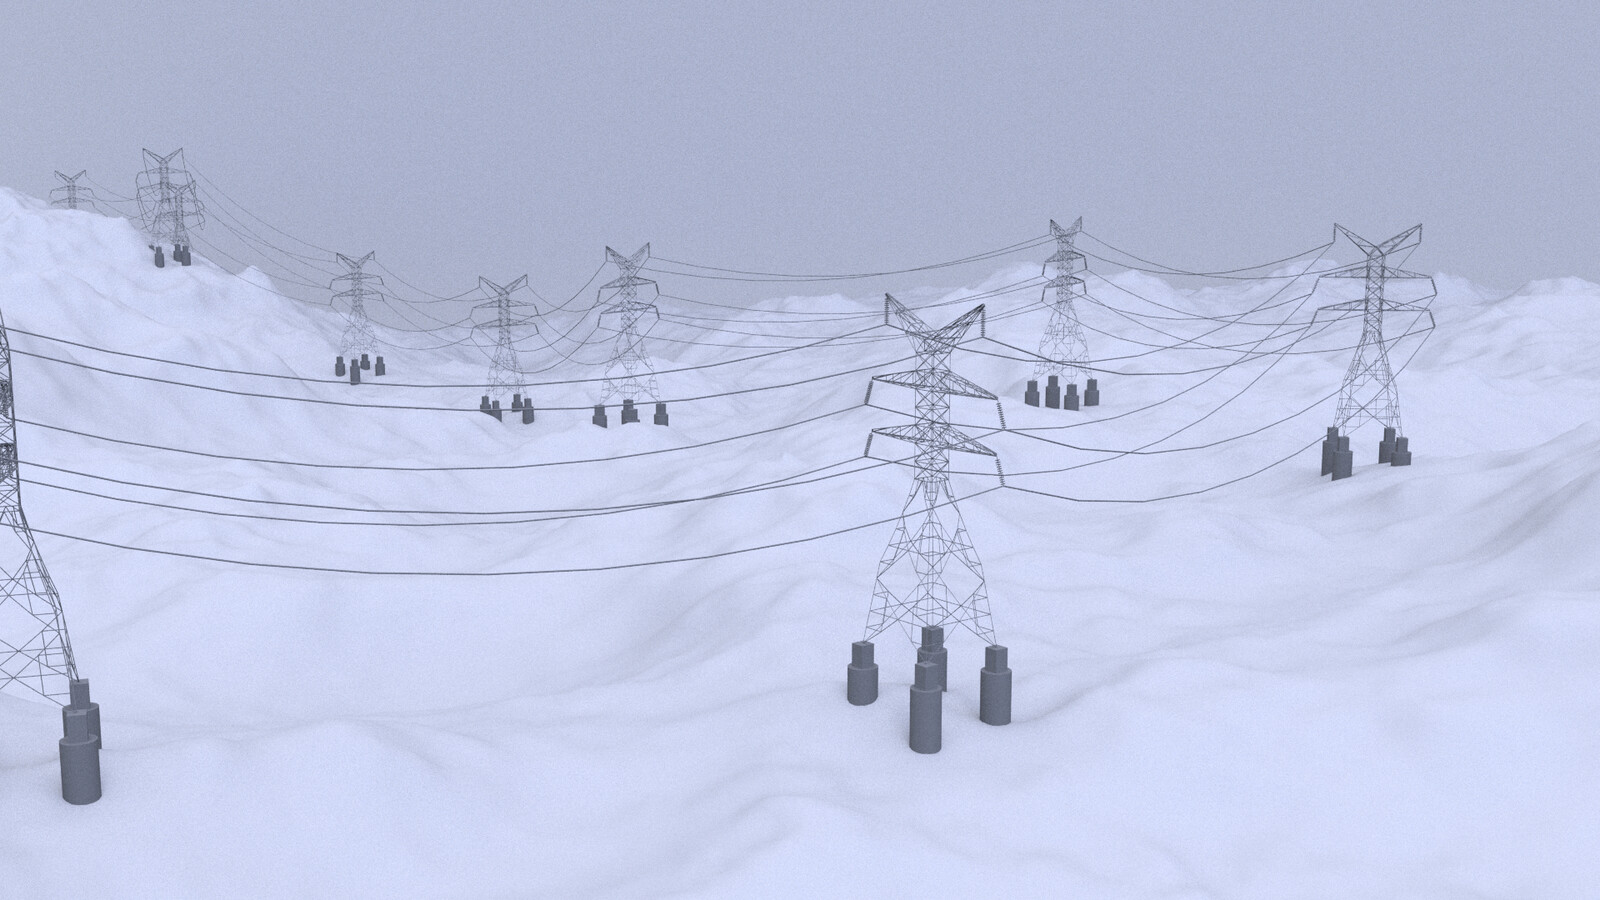 Procedural Modelling: Transmission Towers